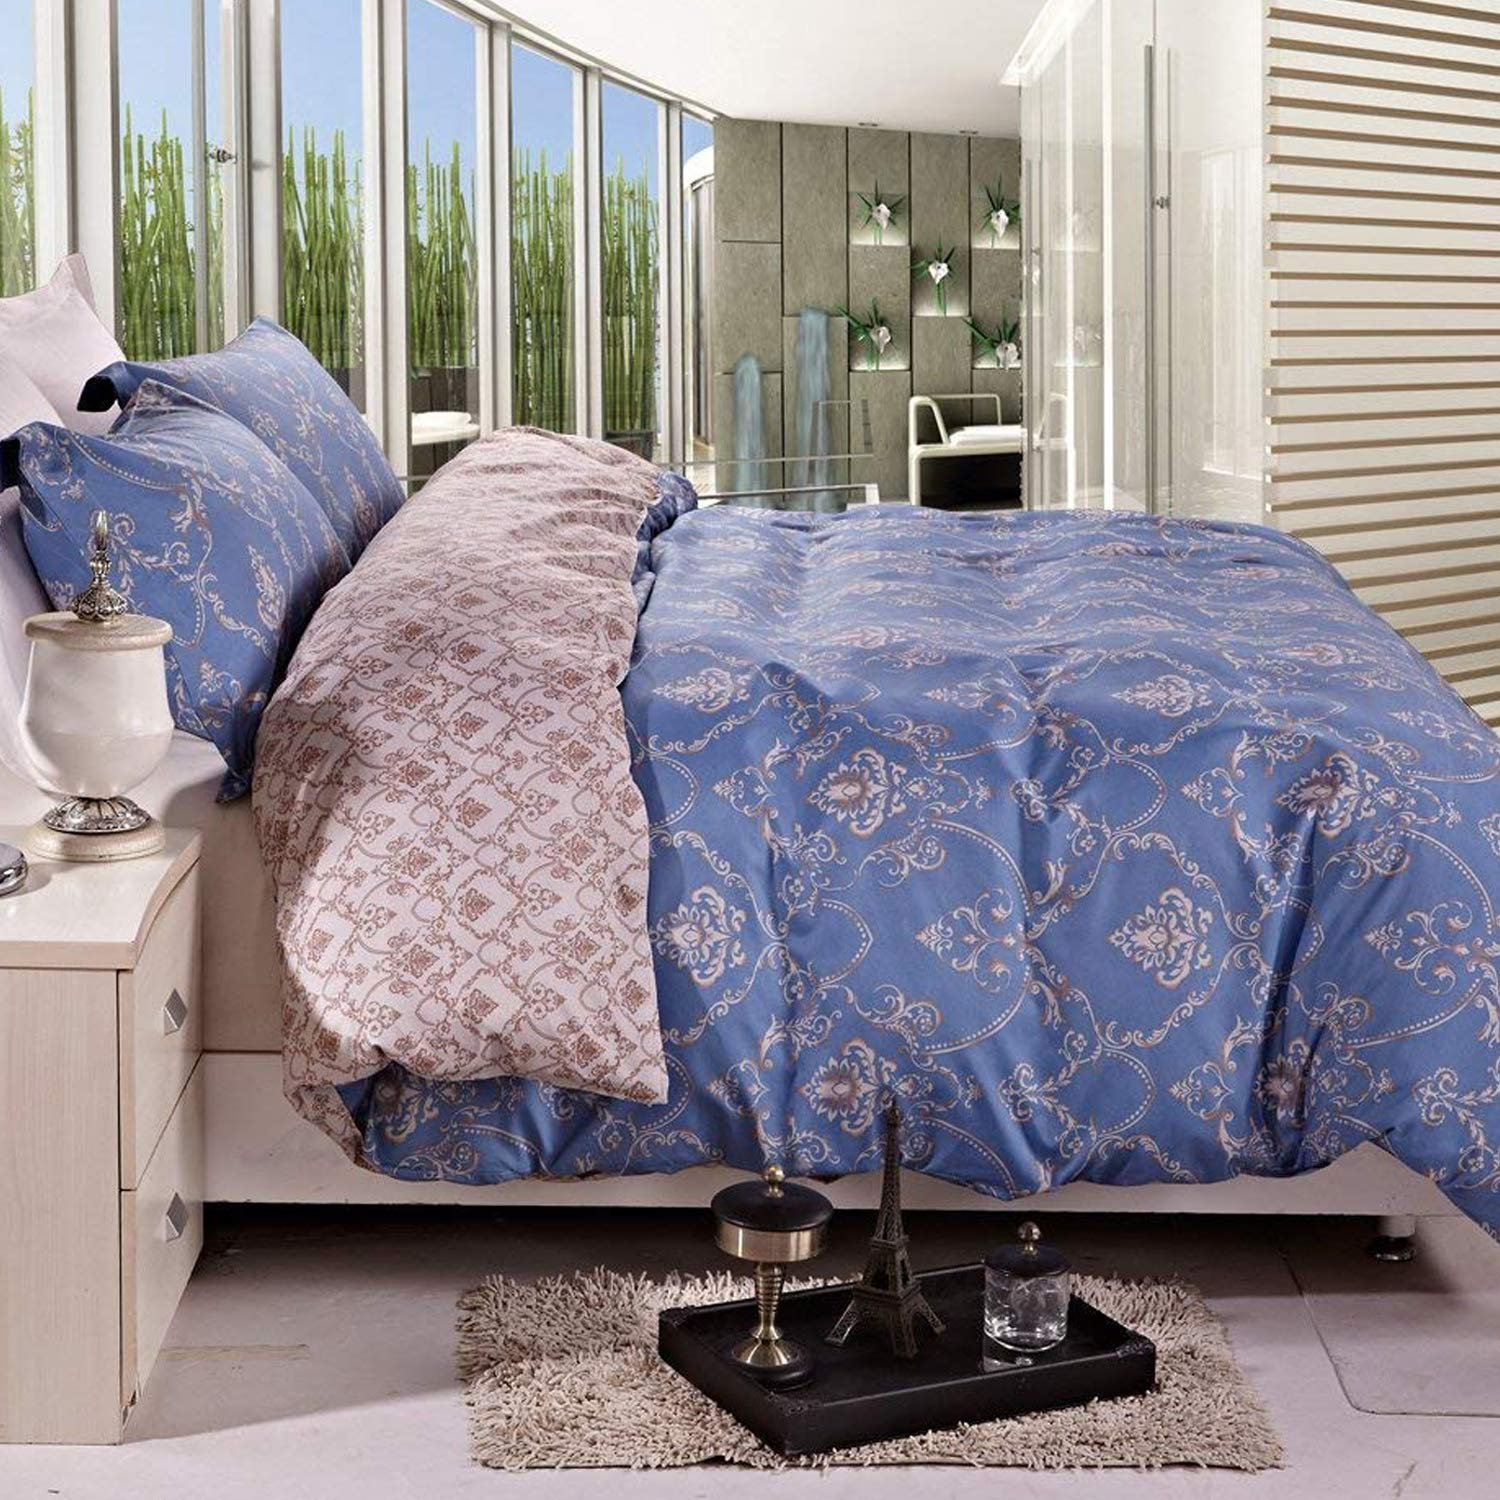 NTBAY 3 Pieces Duvet Cover Set Printed Microfiber Reversible Design(Full/Queen, Cobalt Blue)